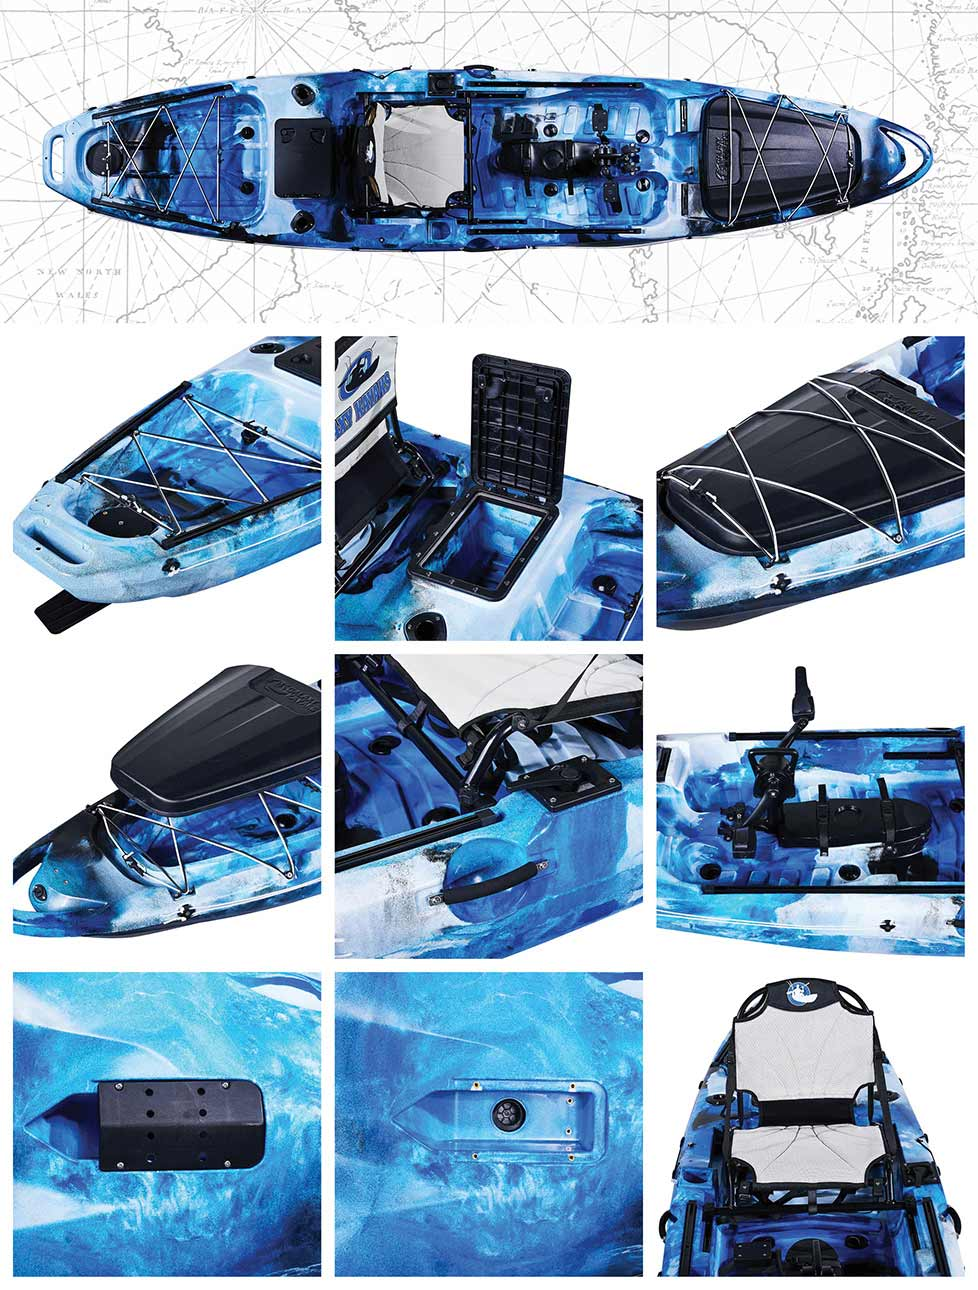 Kayak Overview Image